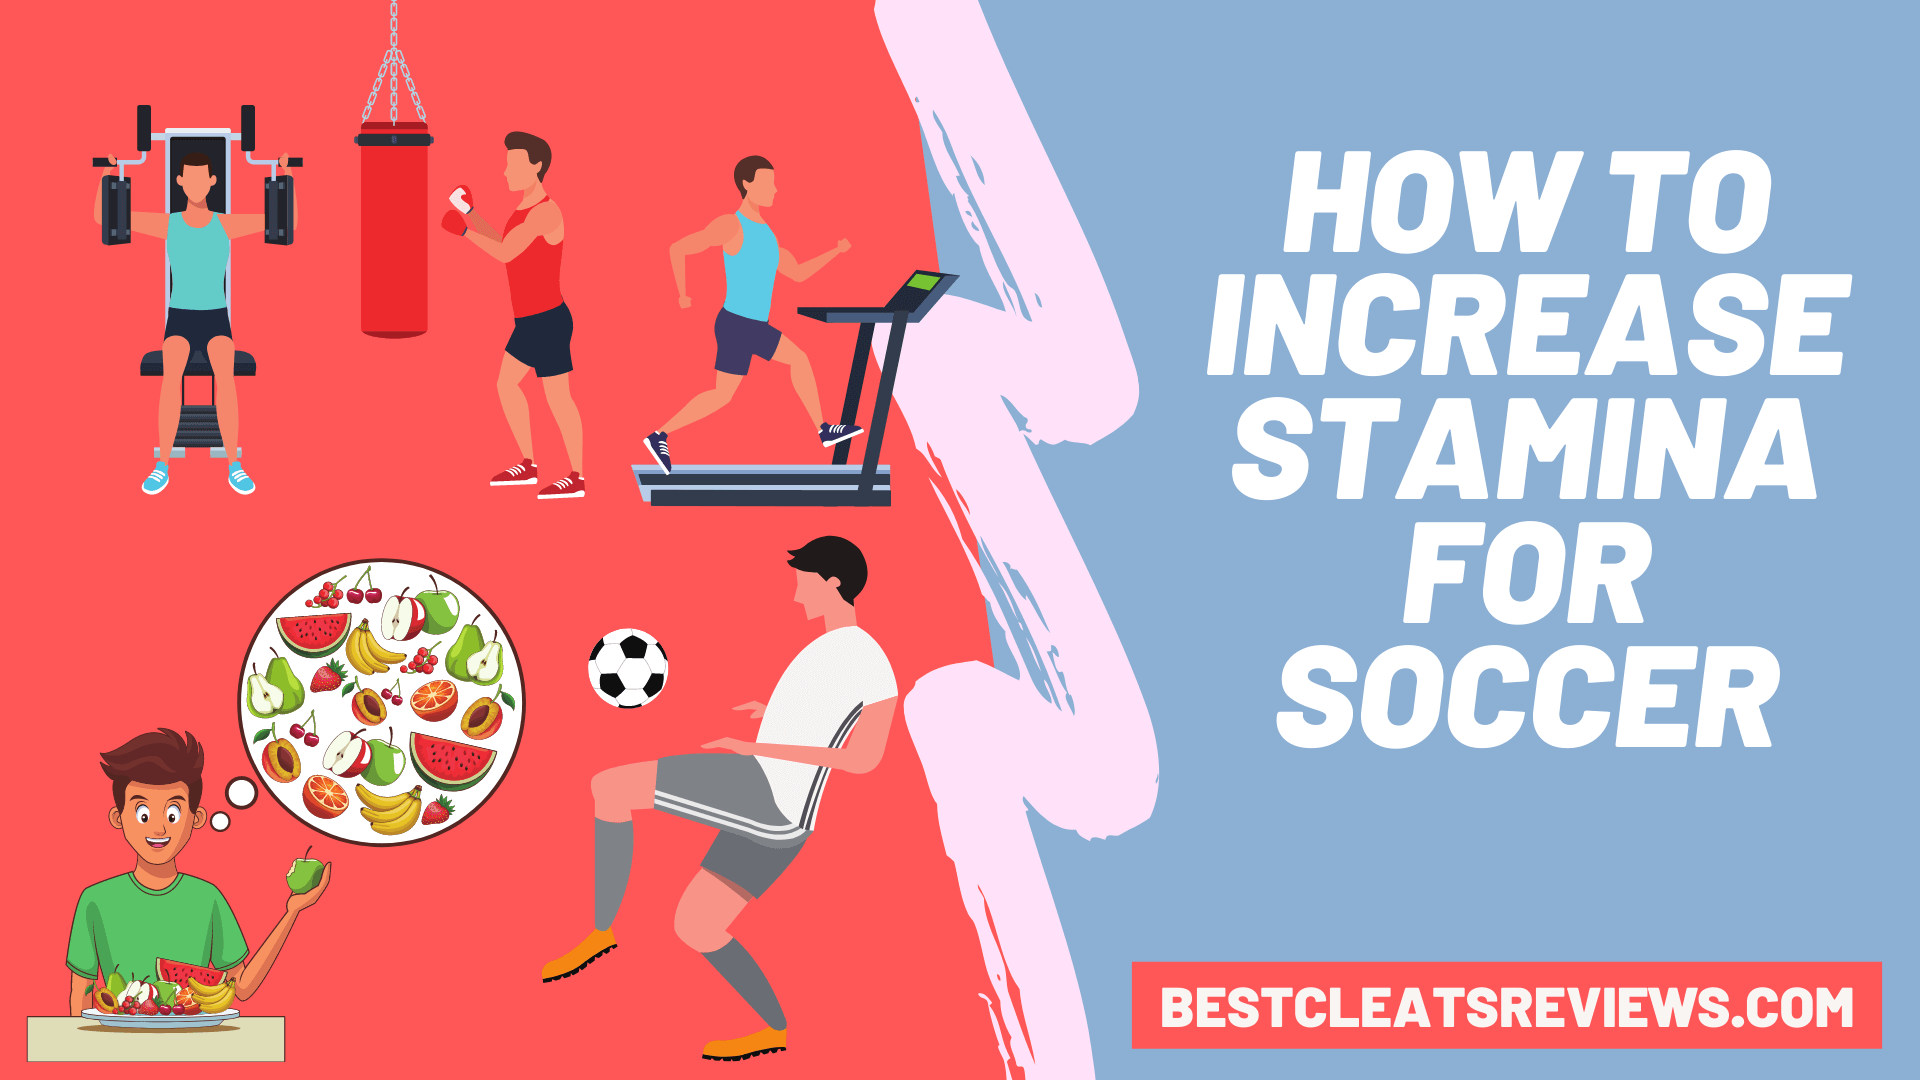 How To Increase Stamina For Soccer